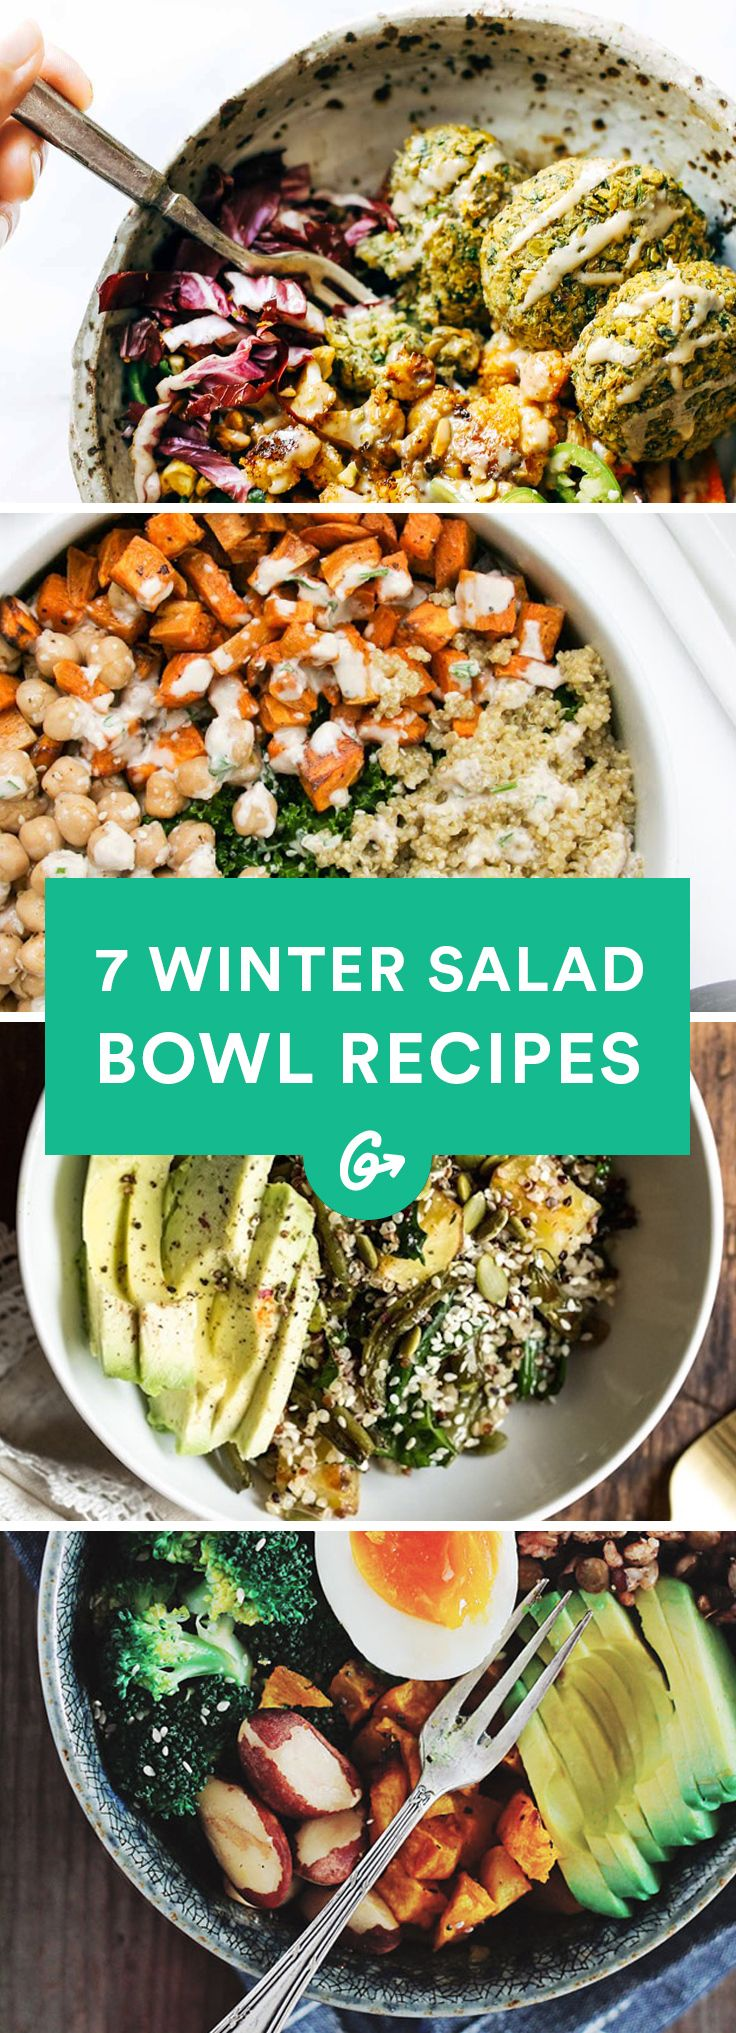 7 Salad Bowl Recipes That\'ll Make You Want to Eat Your Veggies #winter #salad #bowls http://greatist.com/eat/winter-salad-recipes